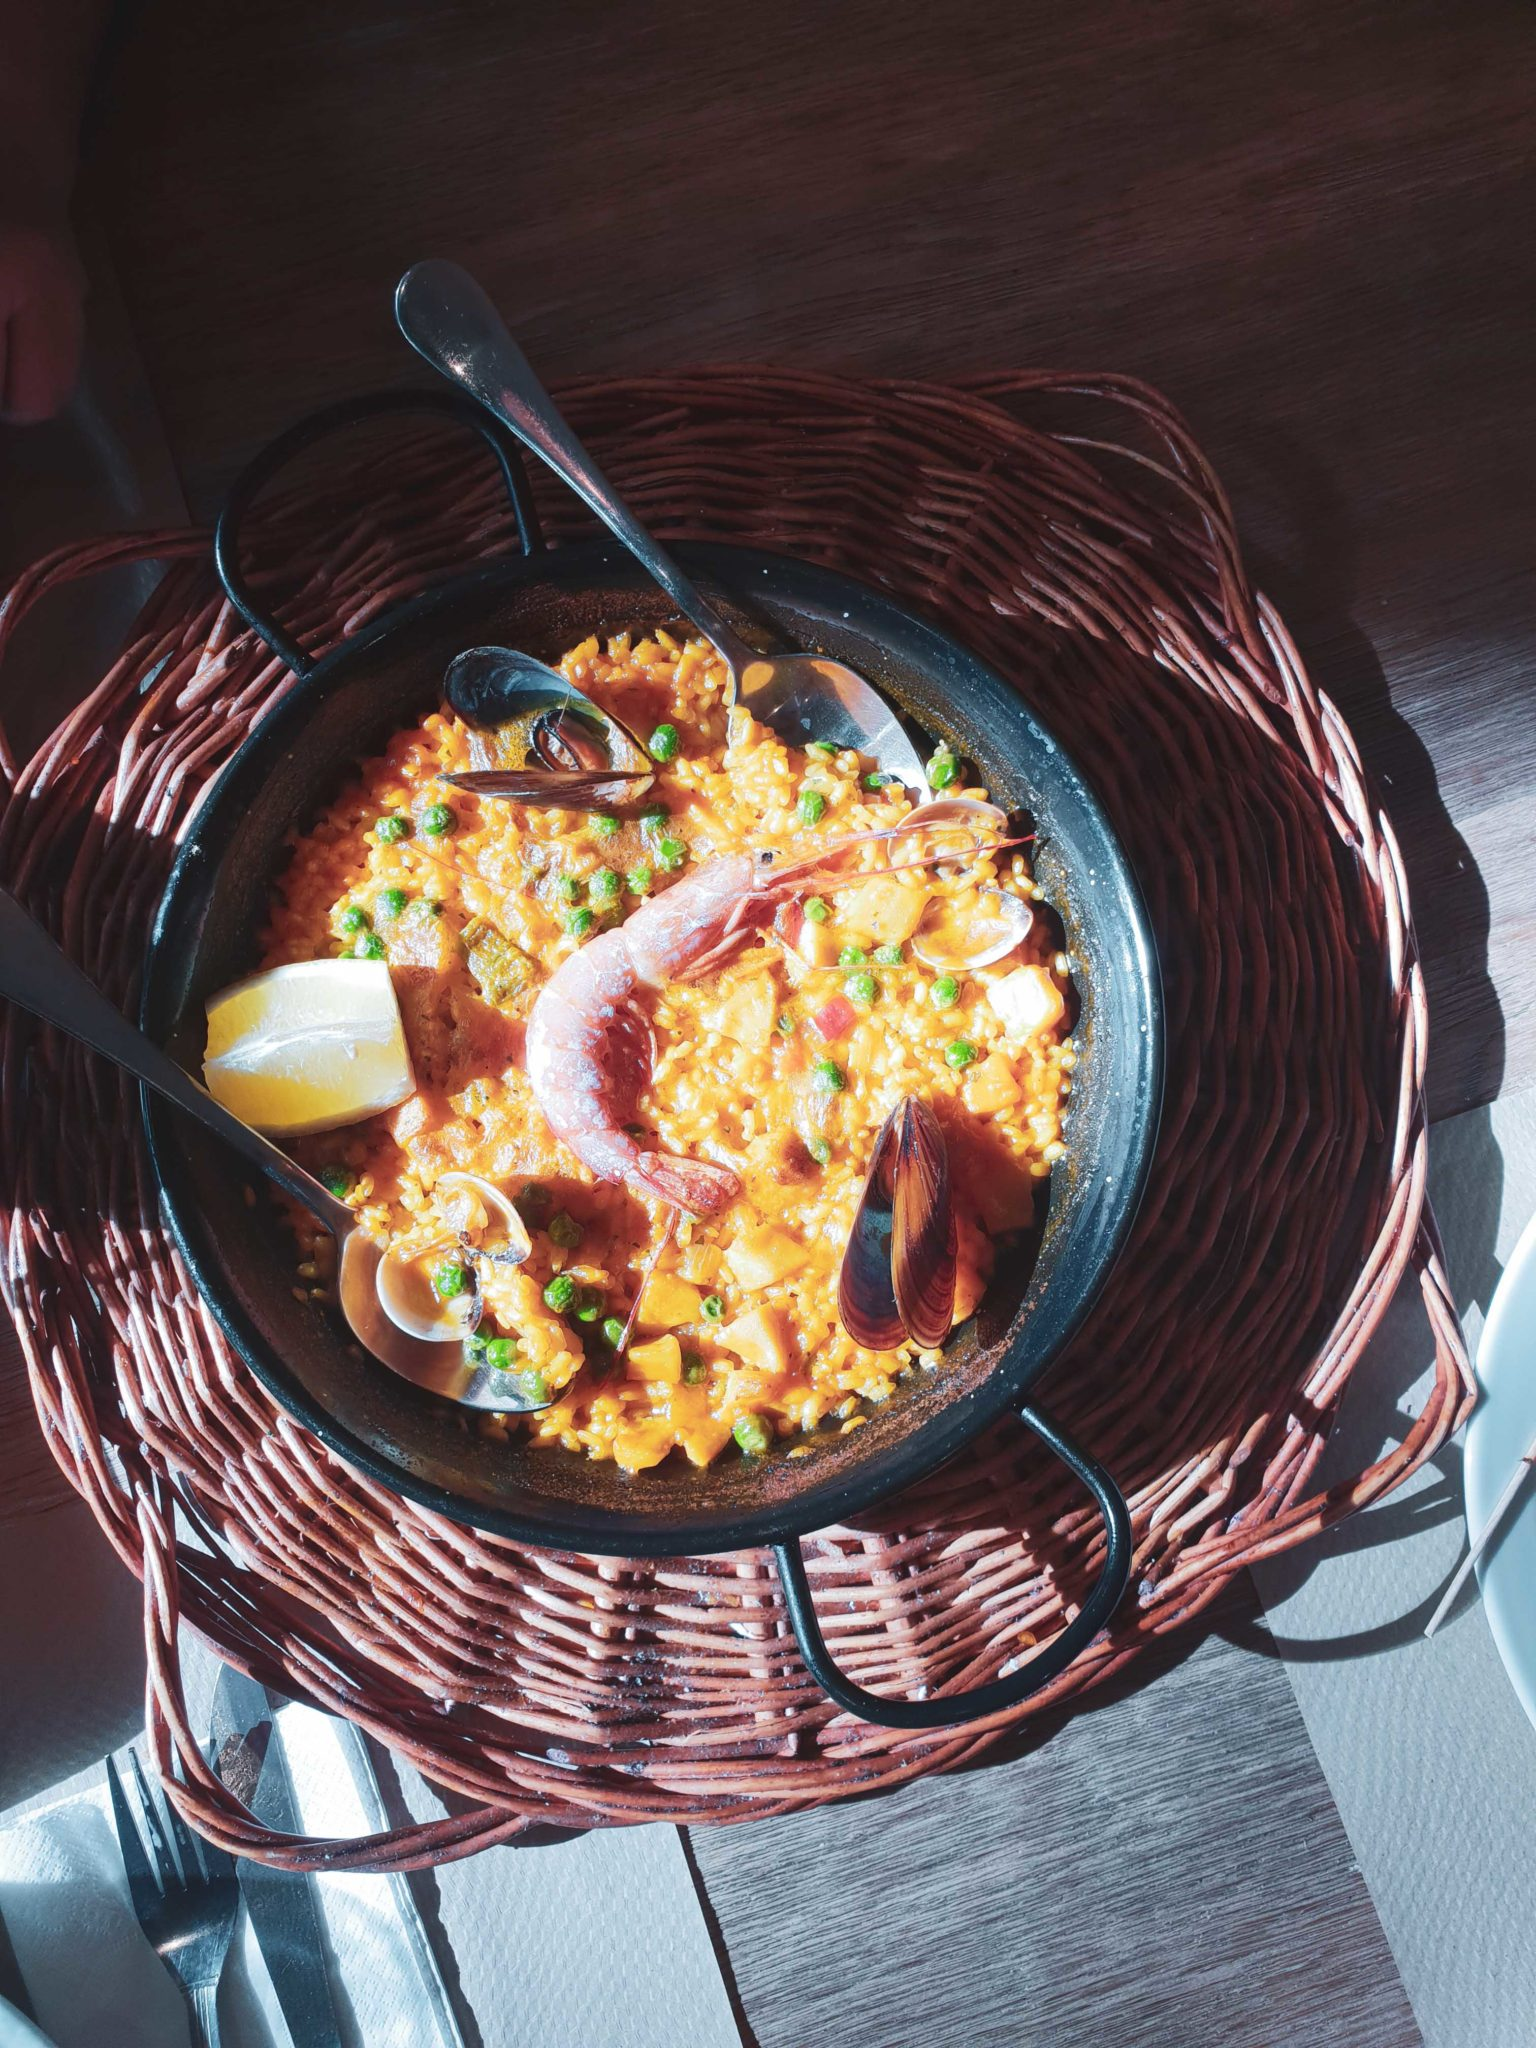 Barcelona travel guide by Michaella and Lina from Bulgarian lifestyle blog Quite a Looker / Seafood Paella